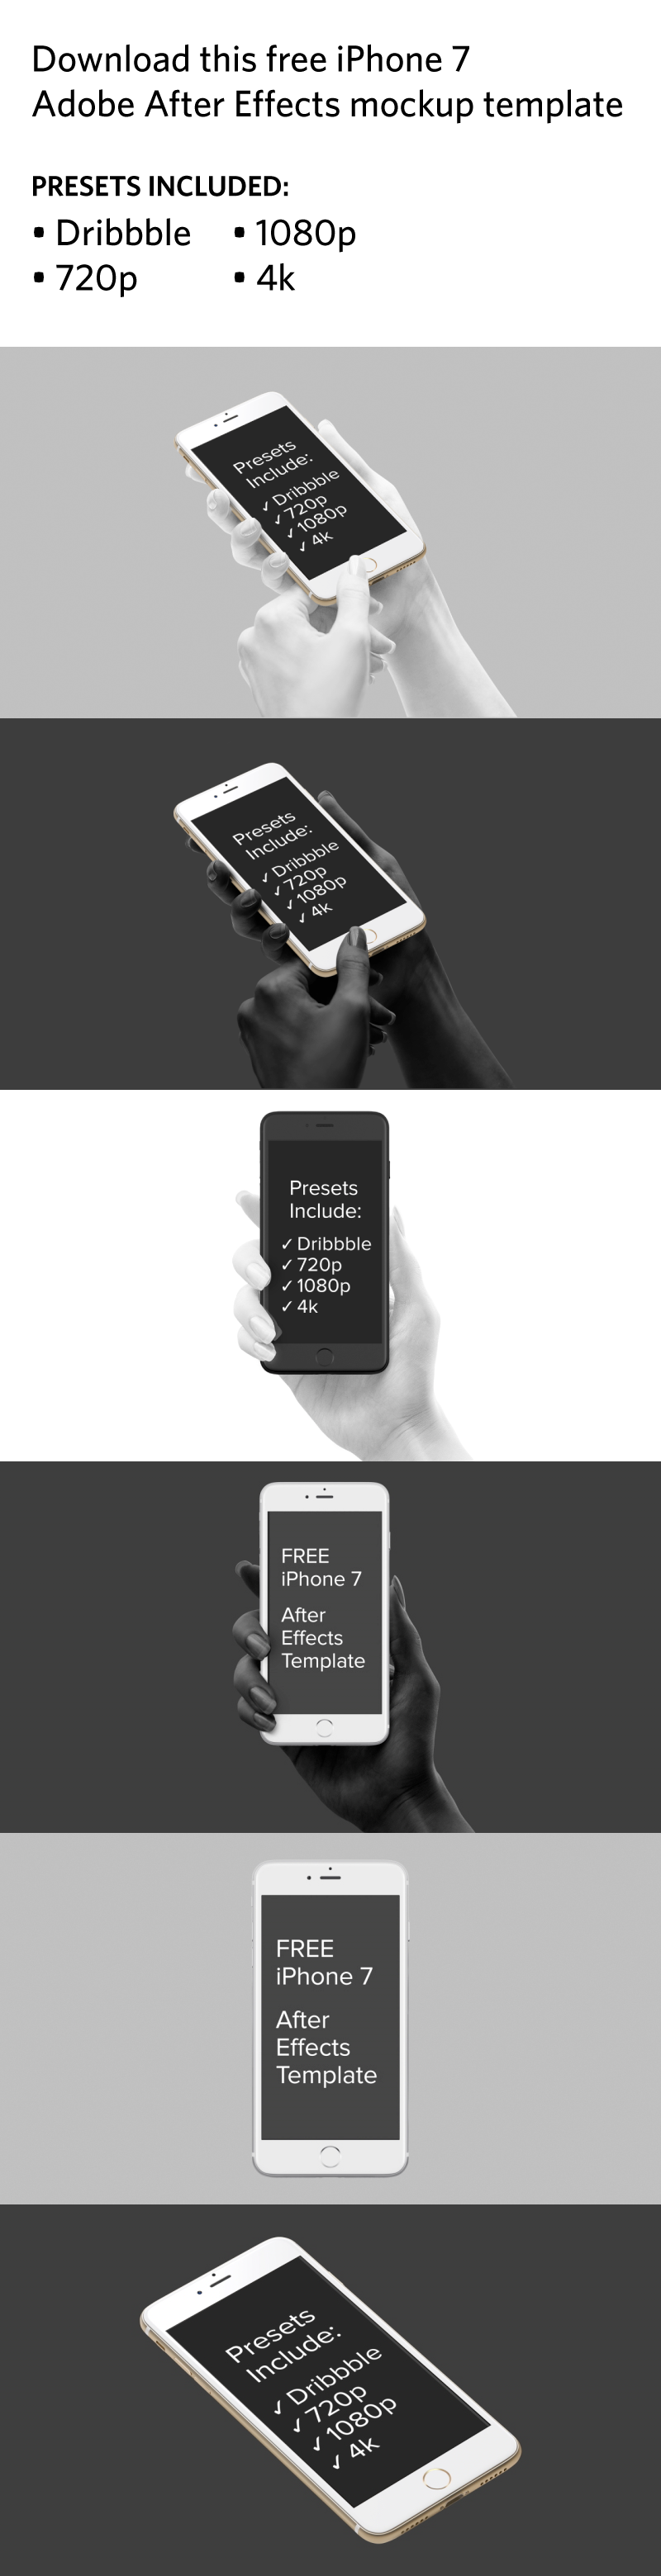 Download this free iPhone 7 Adobe After Effects mockup